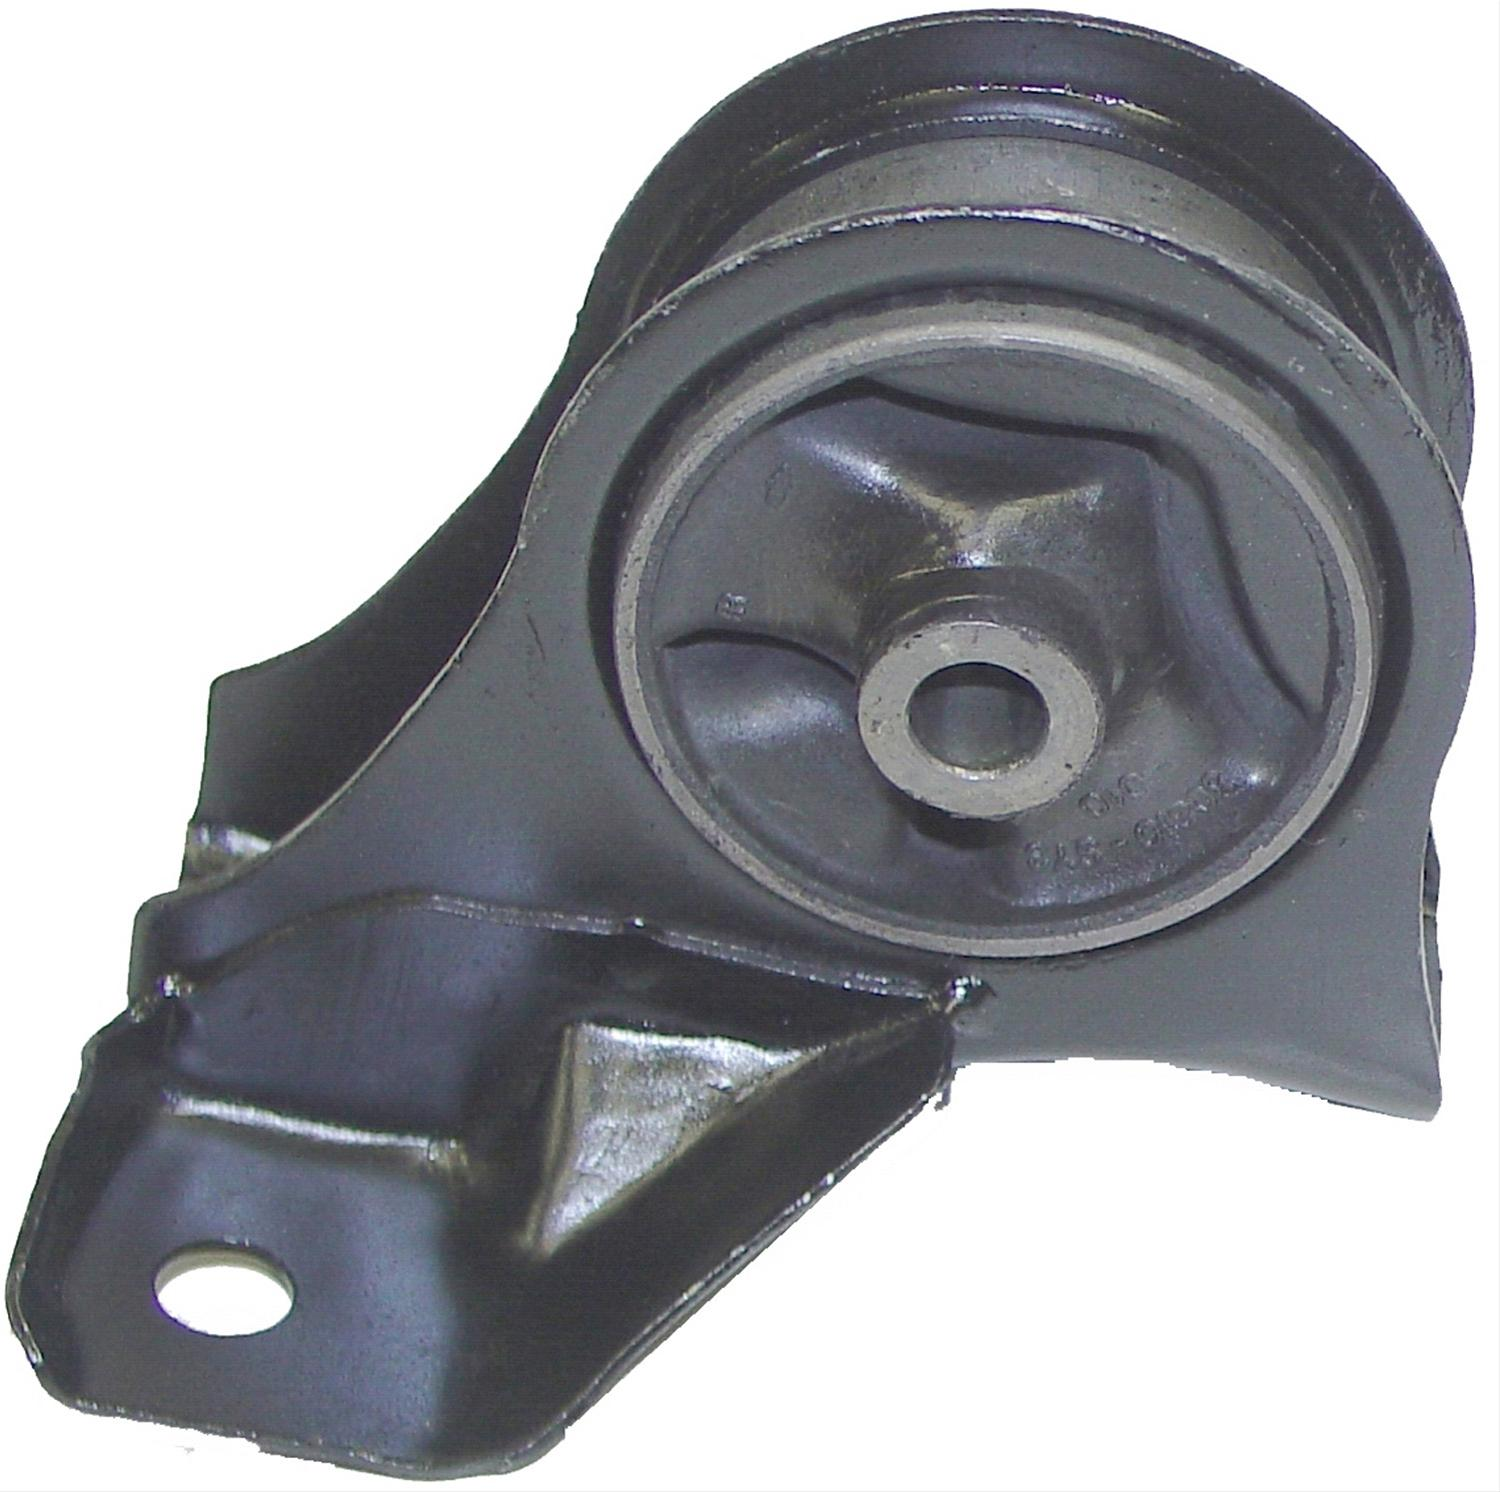 Anchor industries engine mounts 8007 free shipping on for Anchor industries motor mounts